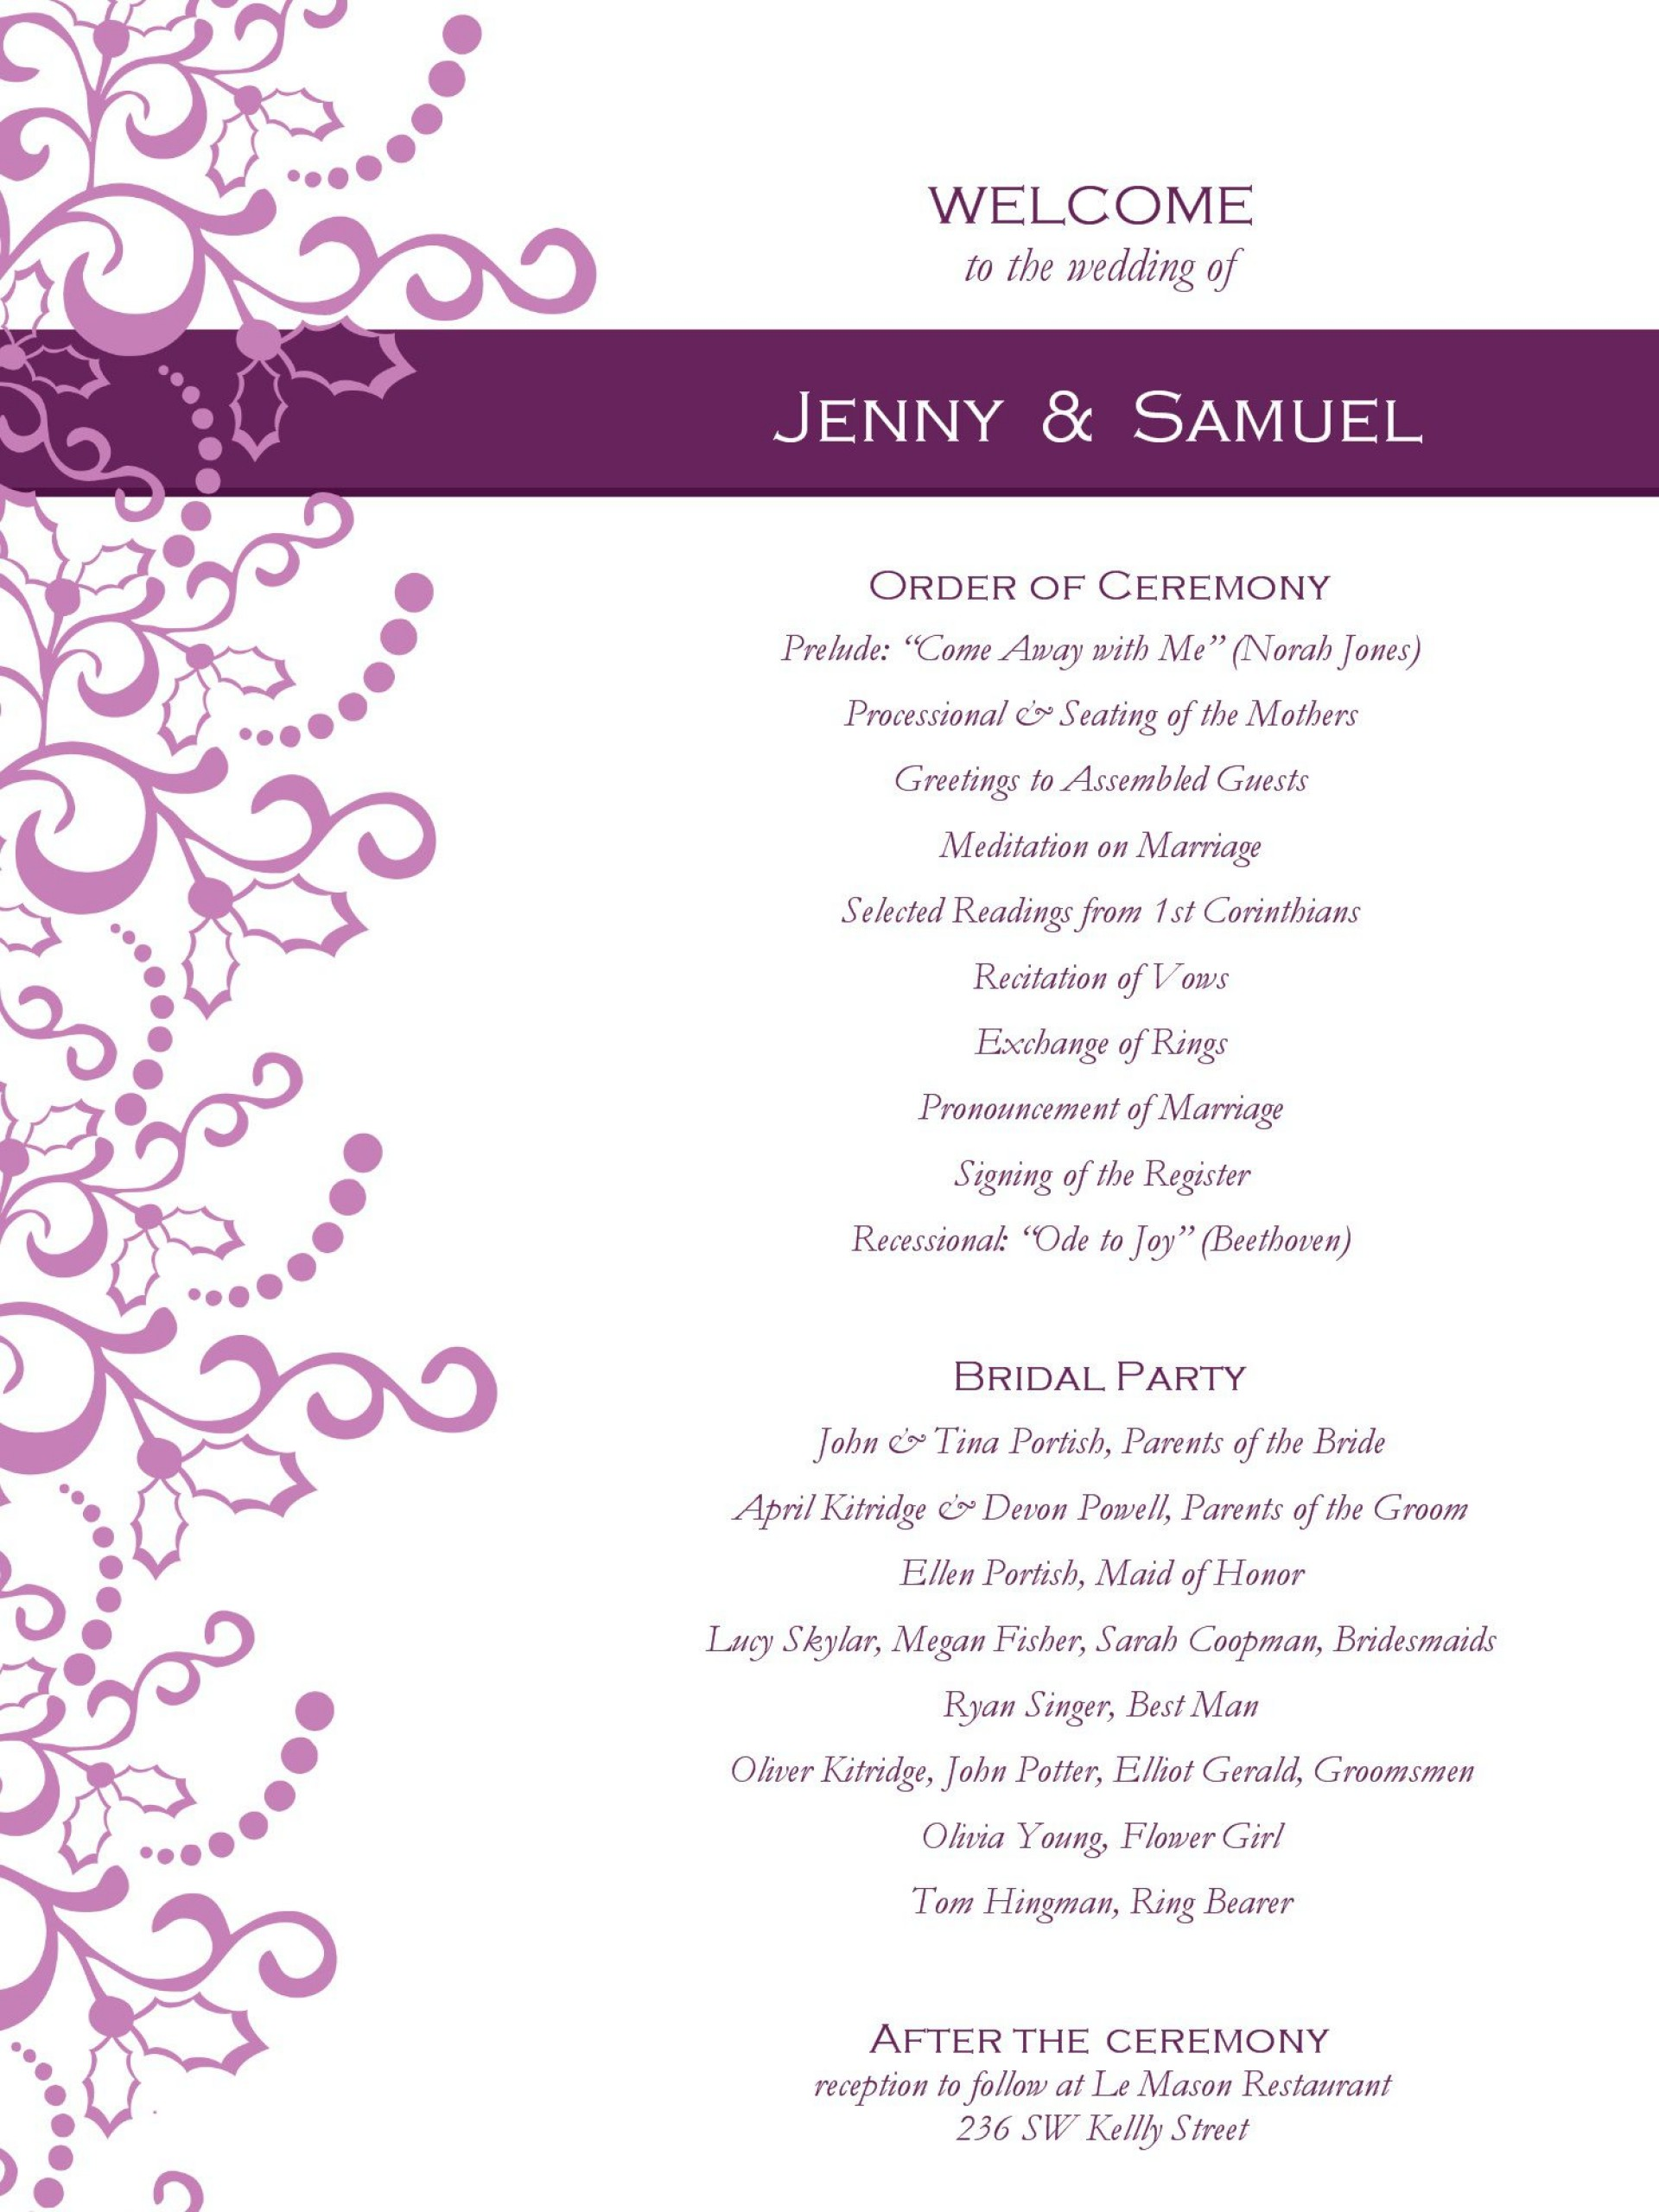 000 Rare Wedding Reception Programme Template High Def  Program Microsoft Word Free Downloadable Pdf1920